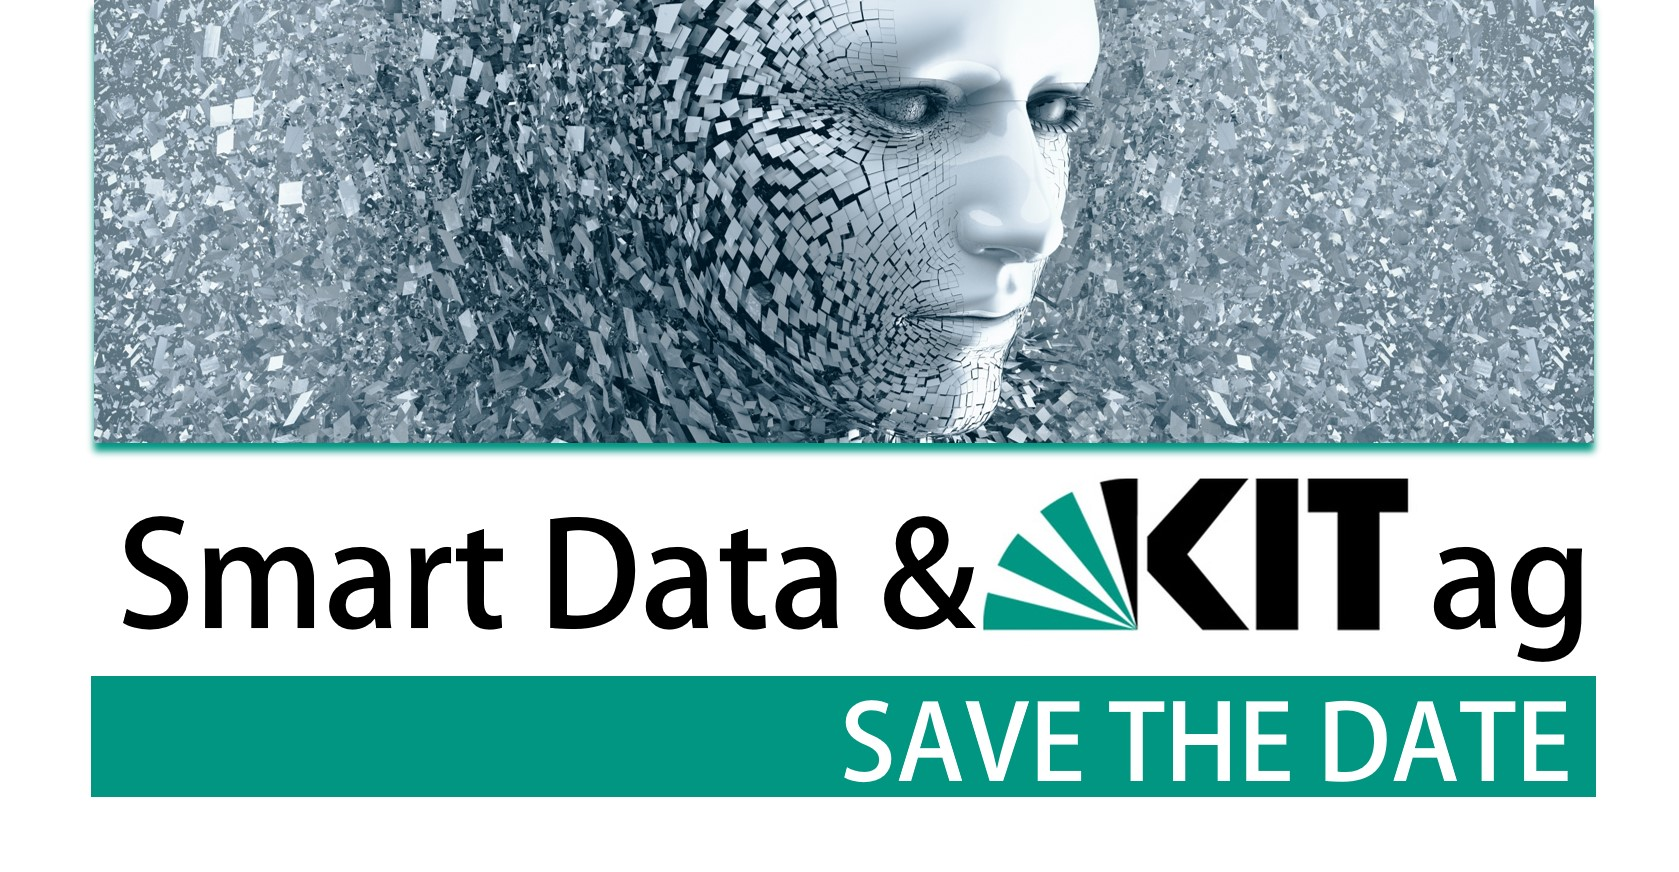 Smart Data & KI Tag 2020 – Save the Date